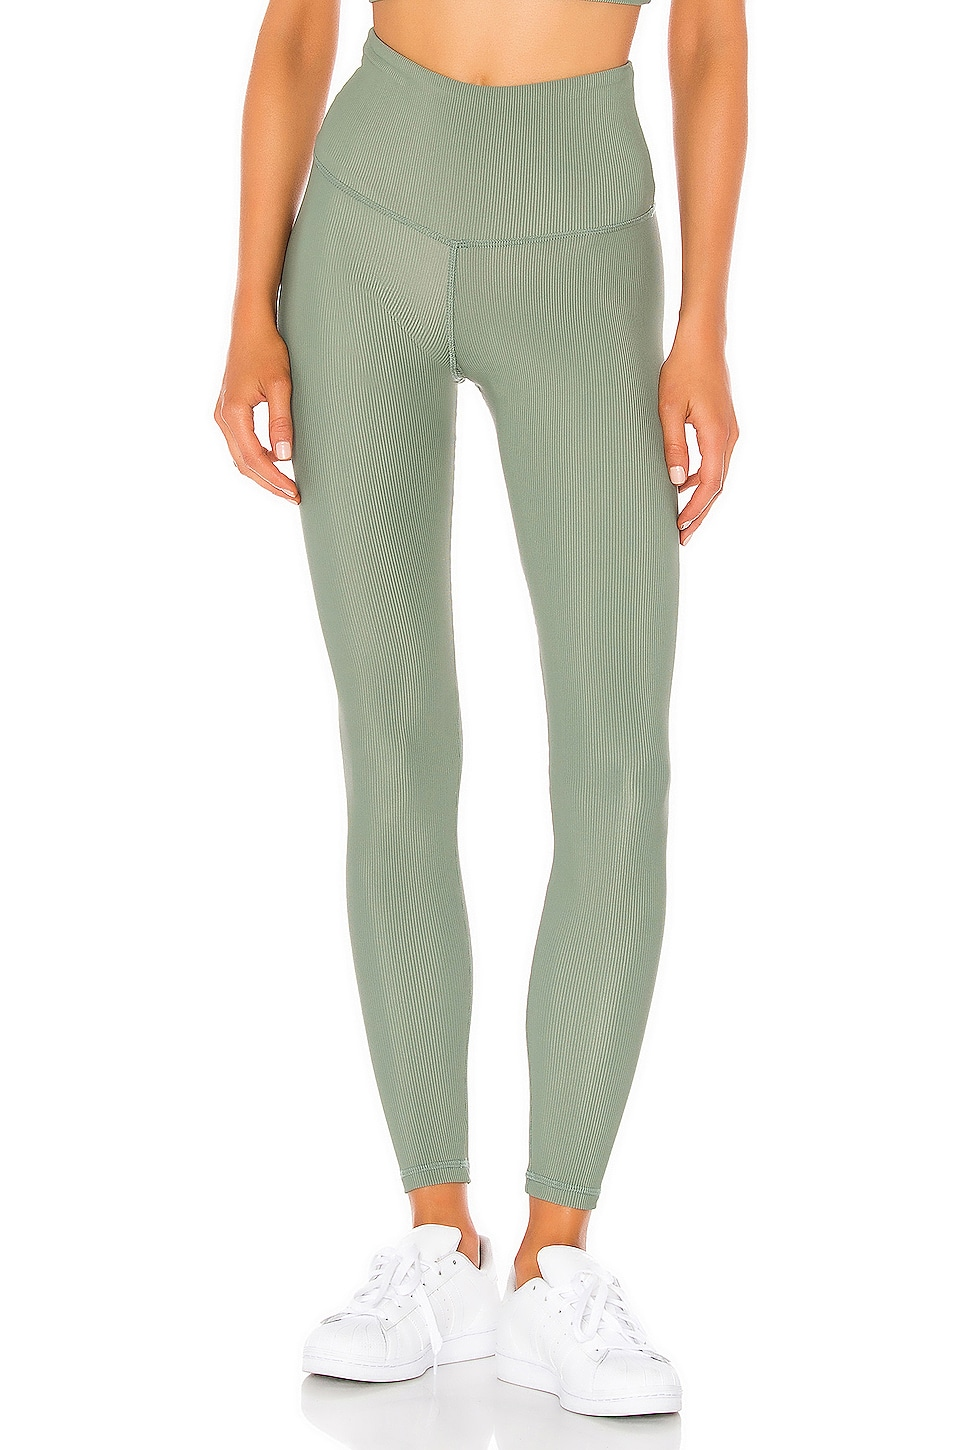 STRUT-THIS Kendall Ankle Pant in Sage Green Rib